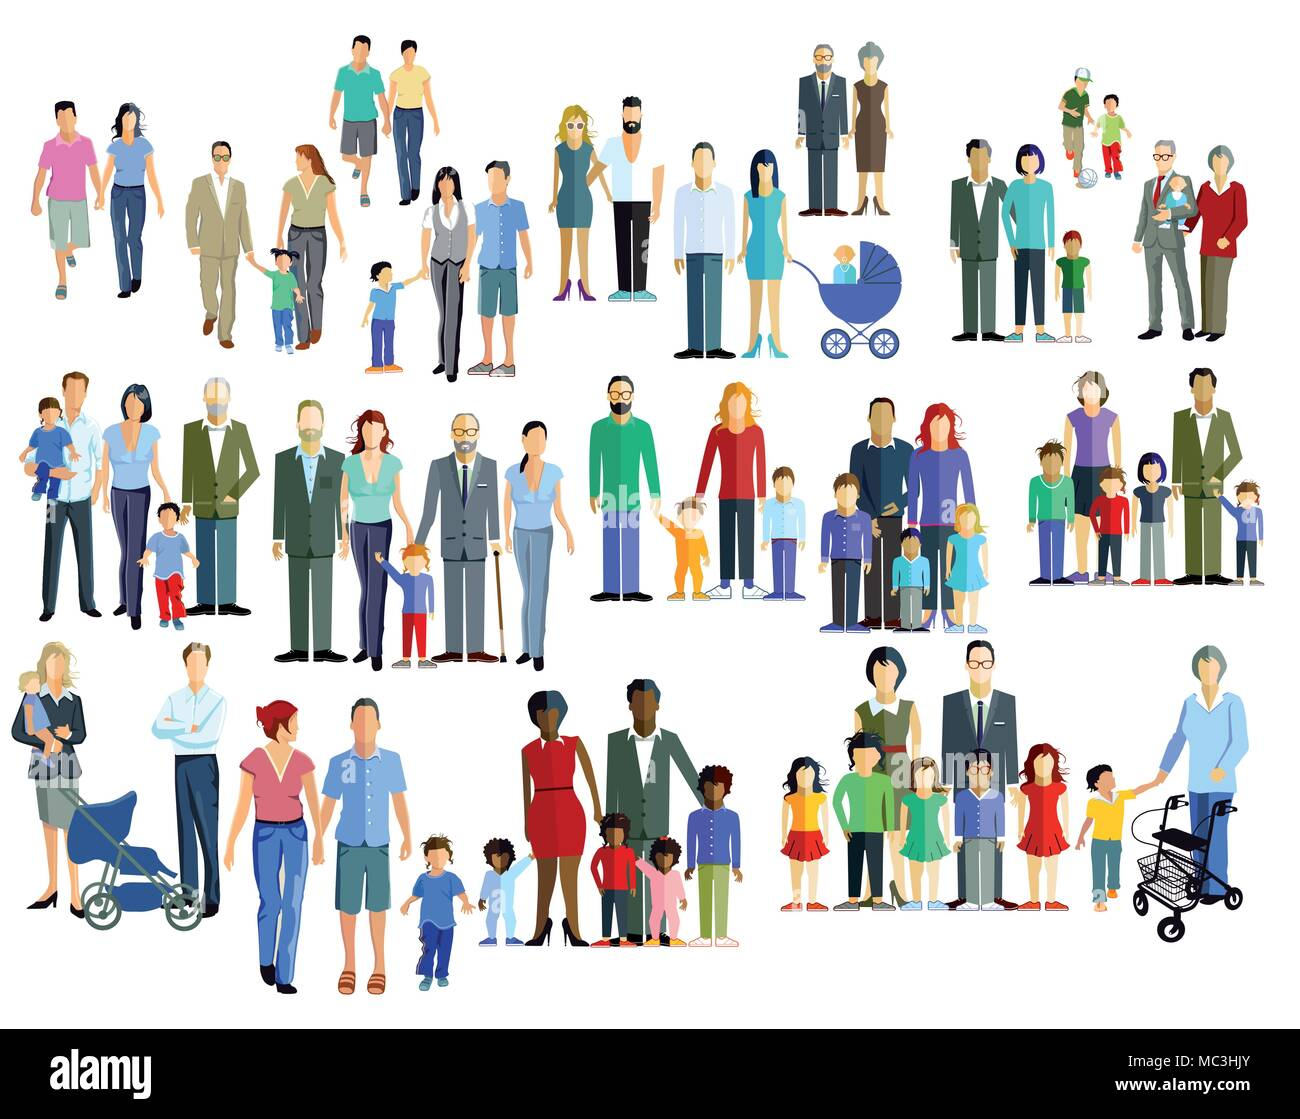 Family members, generation groups, illustration - Stock Vector